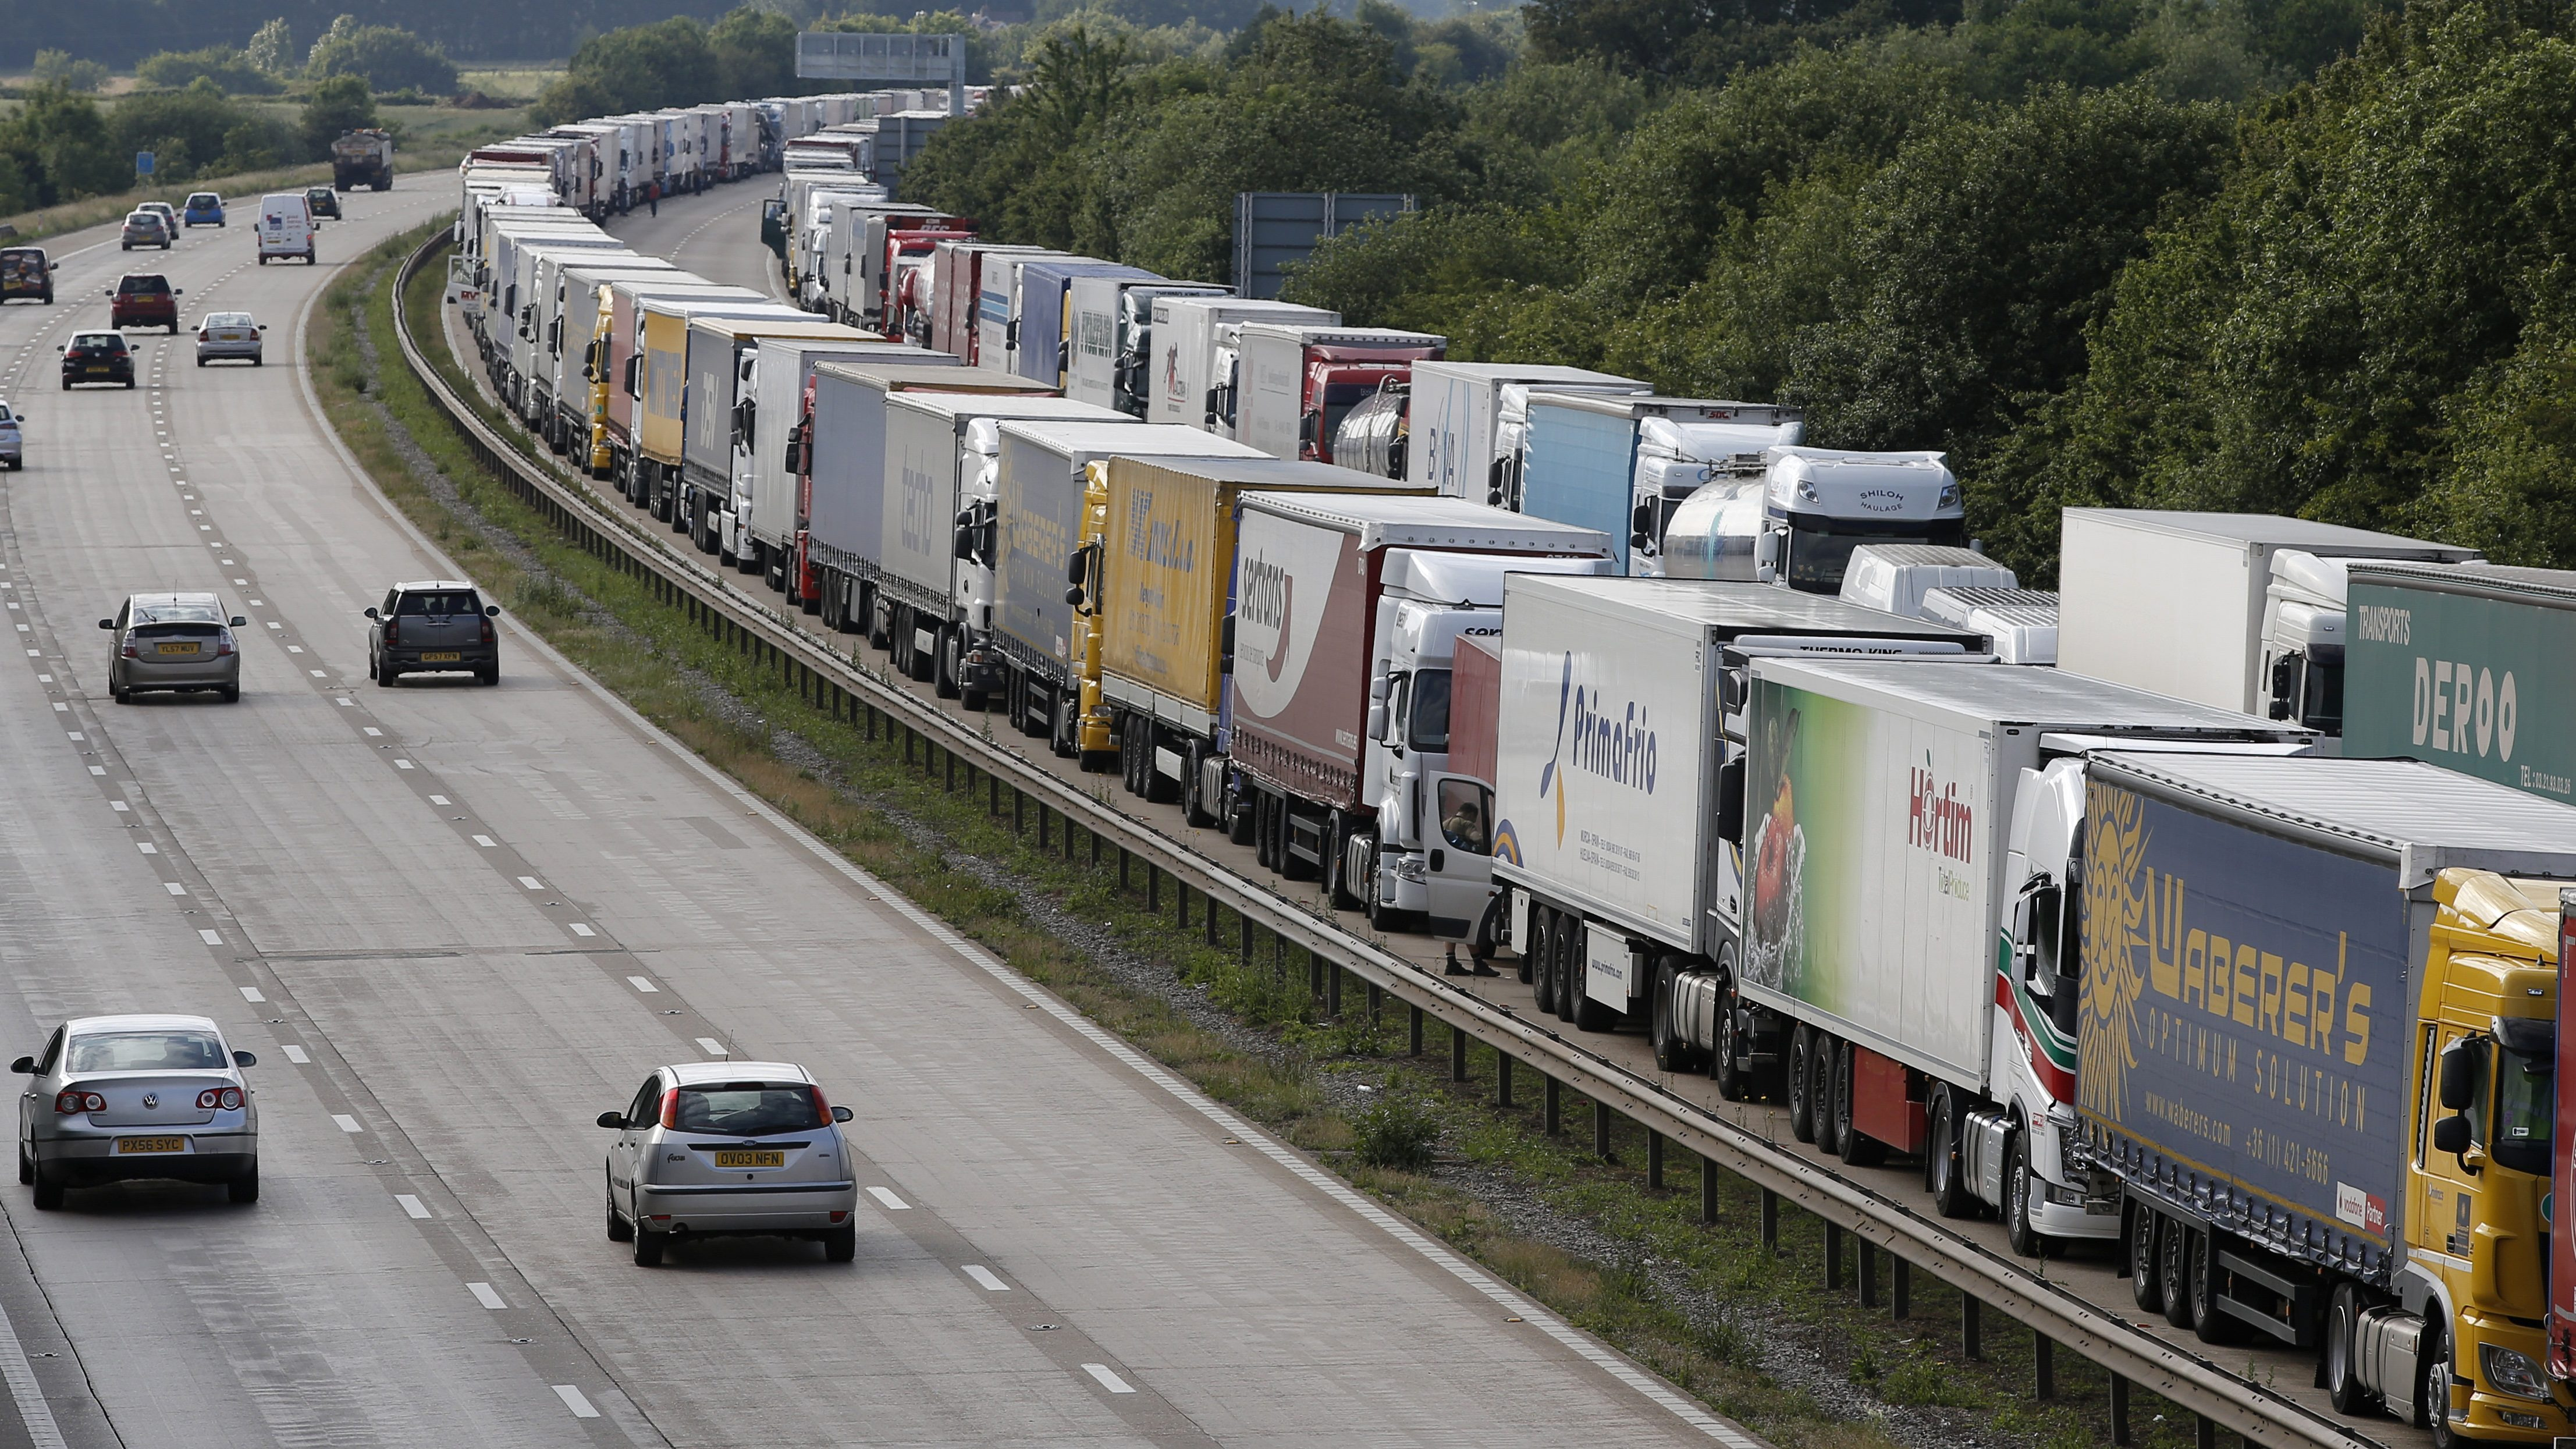 Lorries are backed up on the M20 motorway which leads from London to the Channel Tunnel terminal at Ashford and the Ferry Terminal at Dover